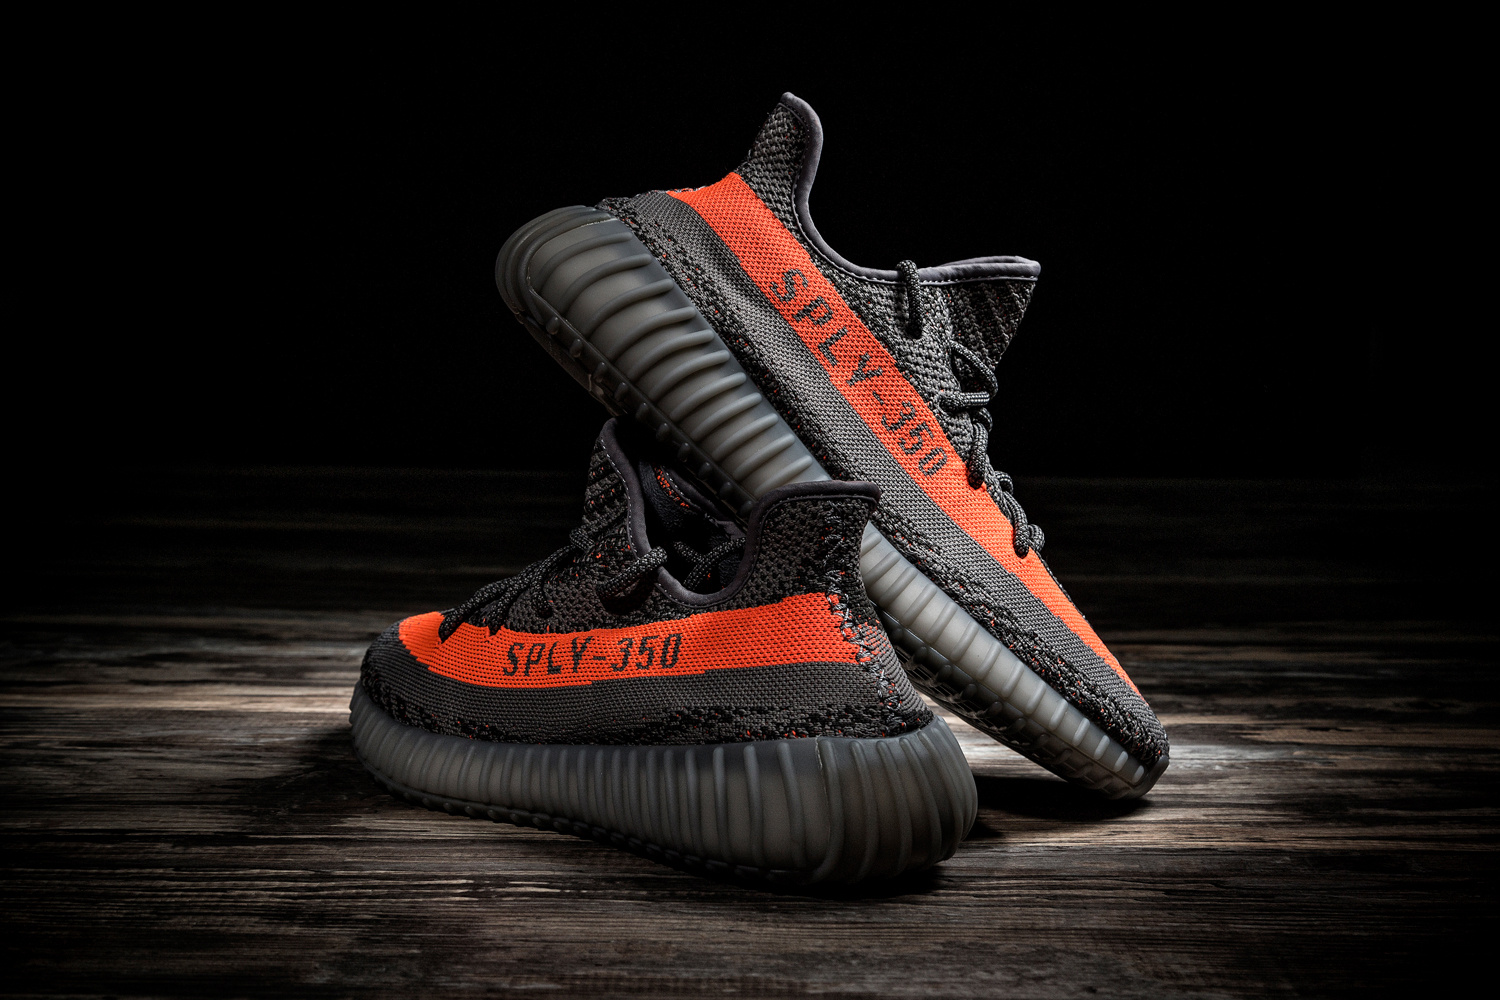 79a2eeefc245 YEEZY Boost 350 V2 Re Releases on HBX Archive HYPEBEAST 1500x1000